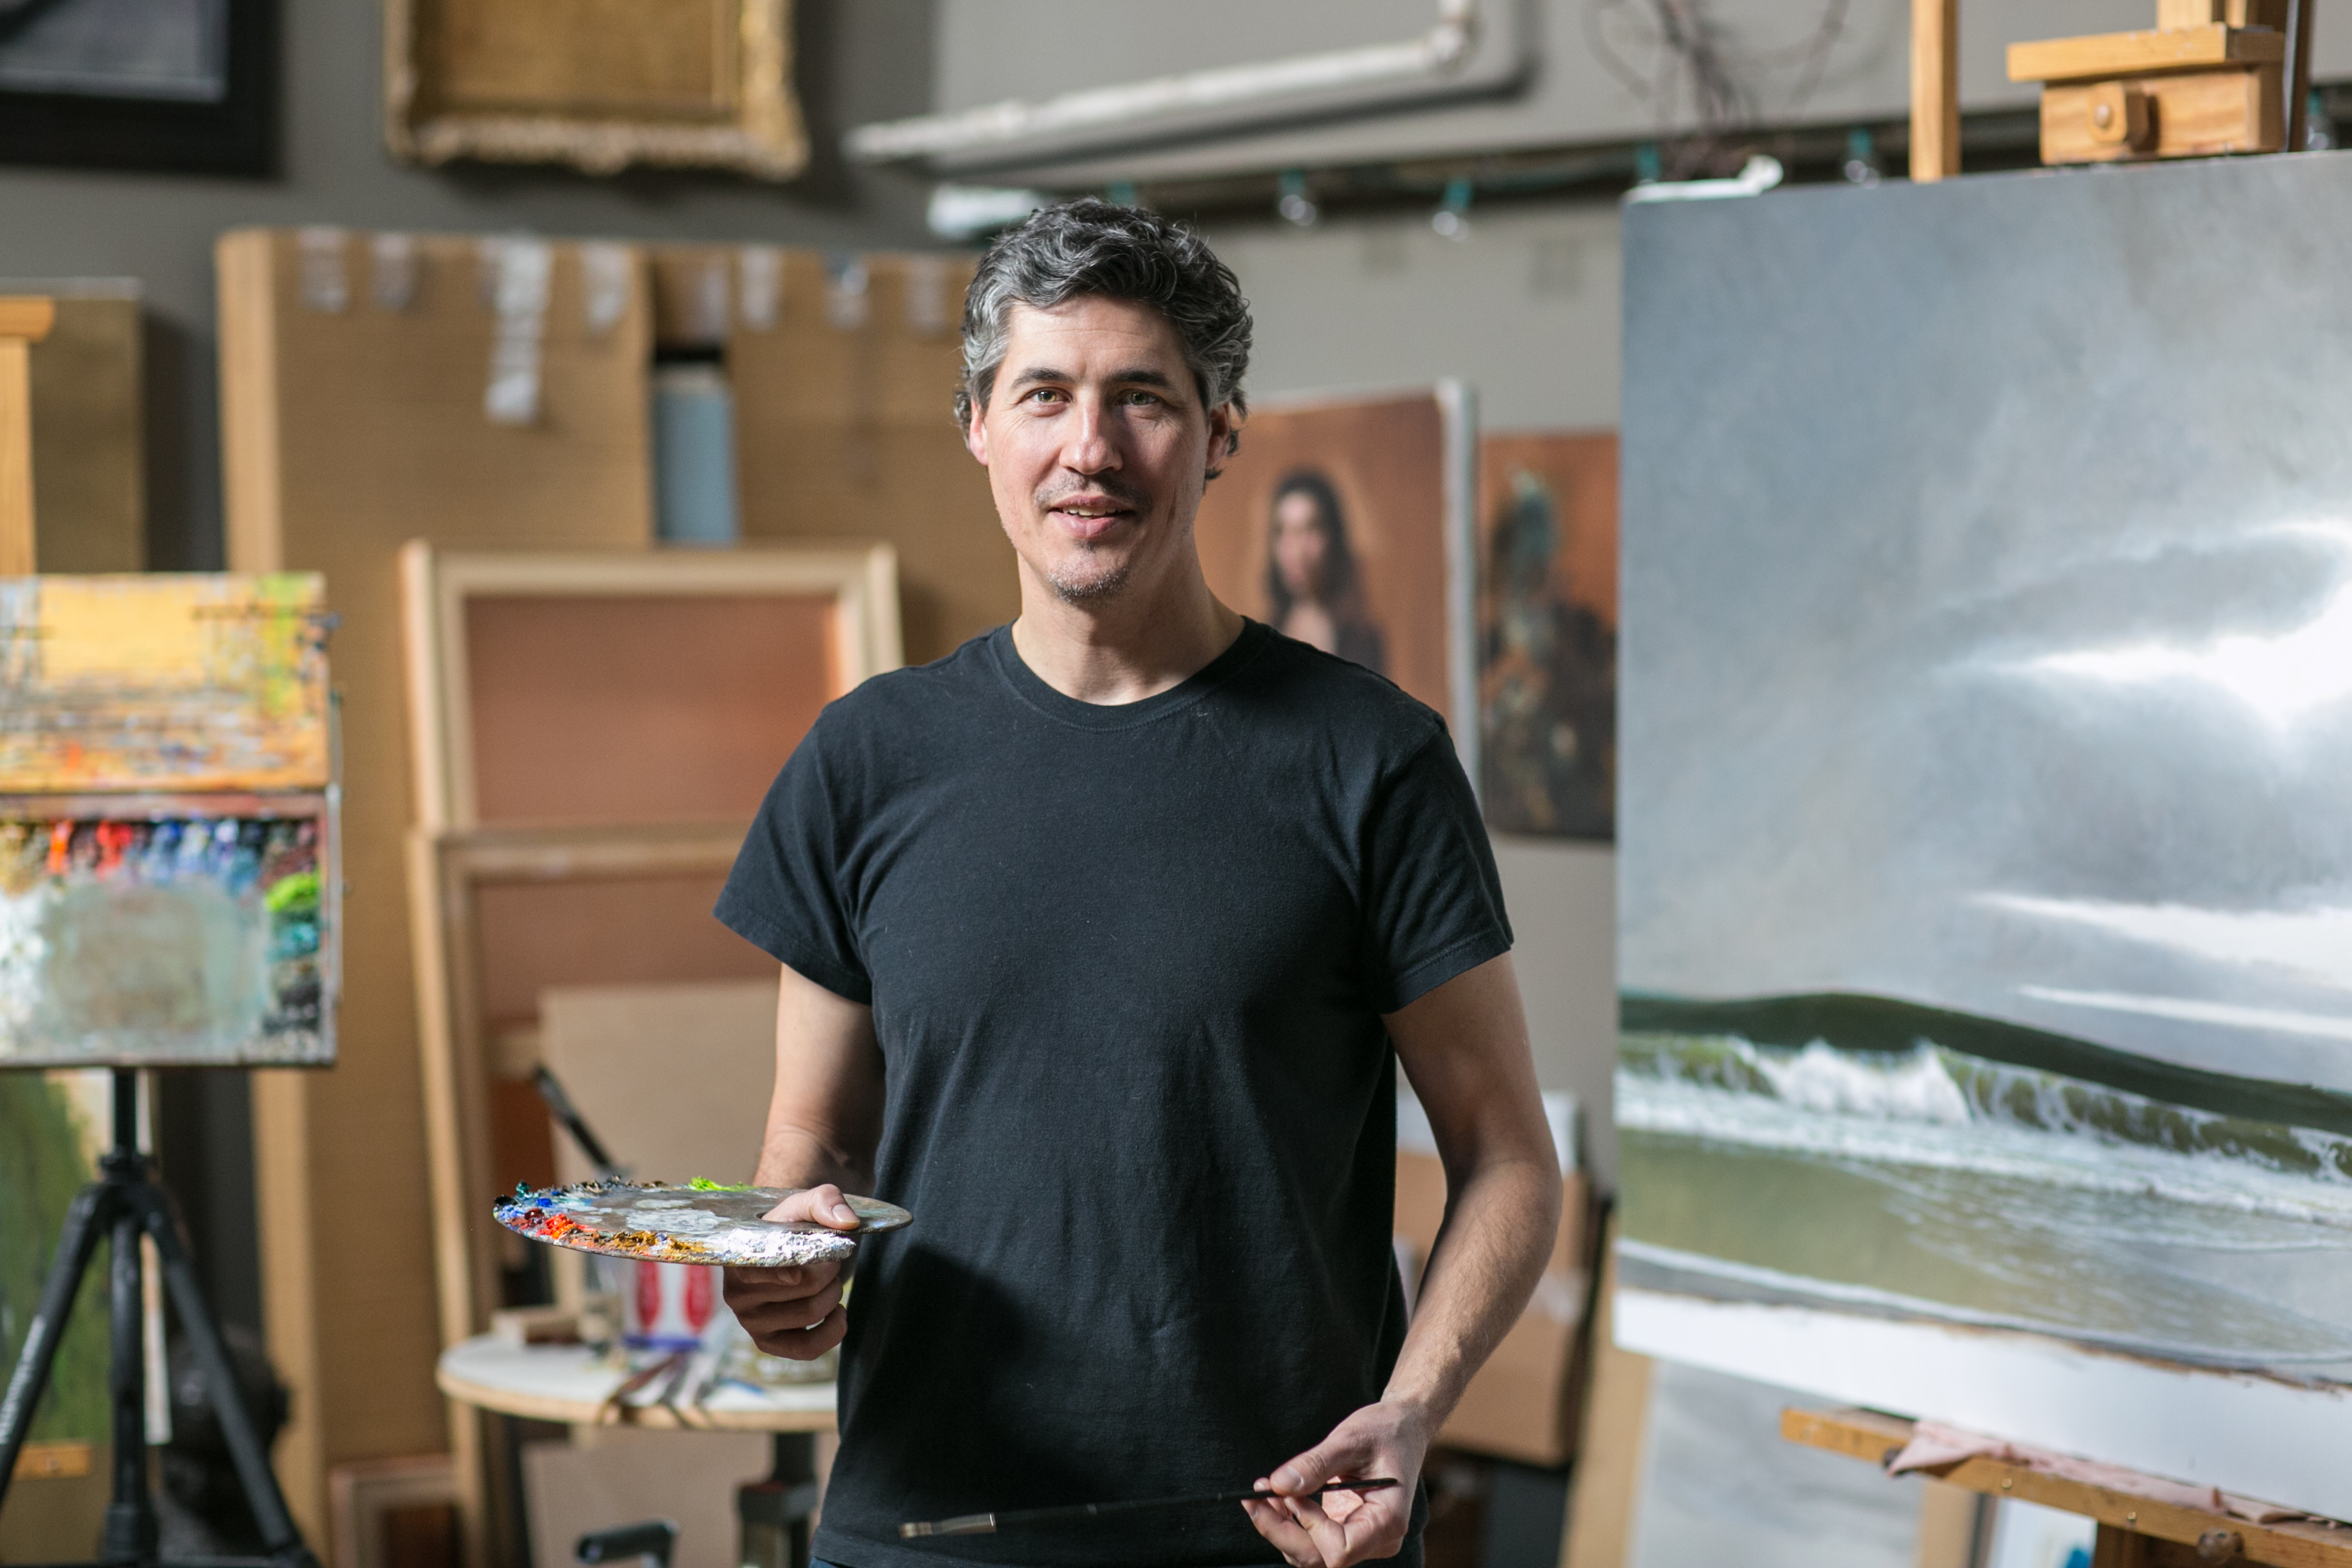 Artist Brendan Johnston's Profound Search to Affirm Life